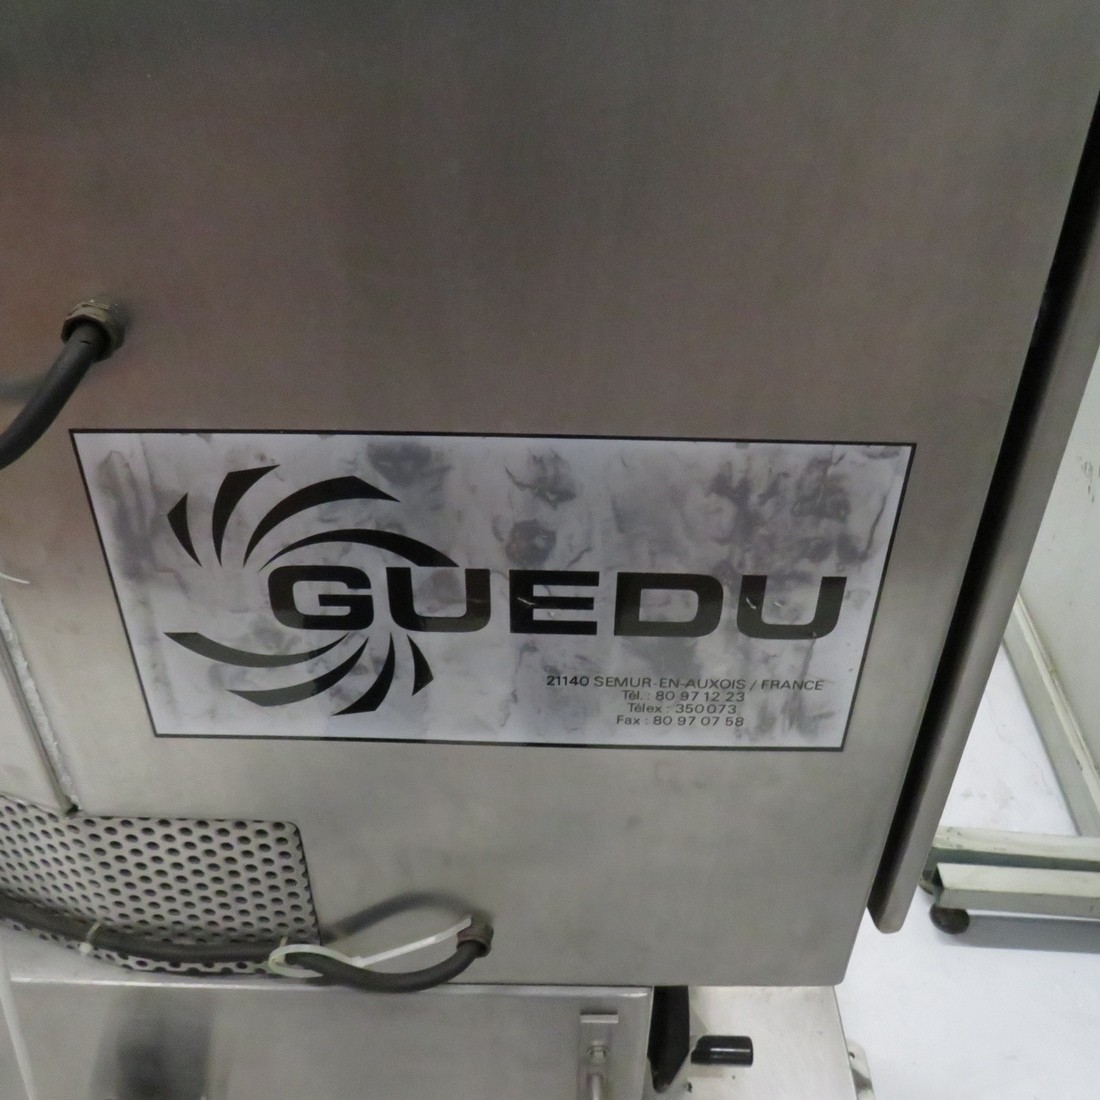 R6MC896 Stainless steel GUEDU mixer 20 NO/PA n° 8062 type capacity 20 litres